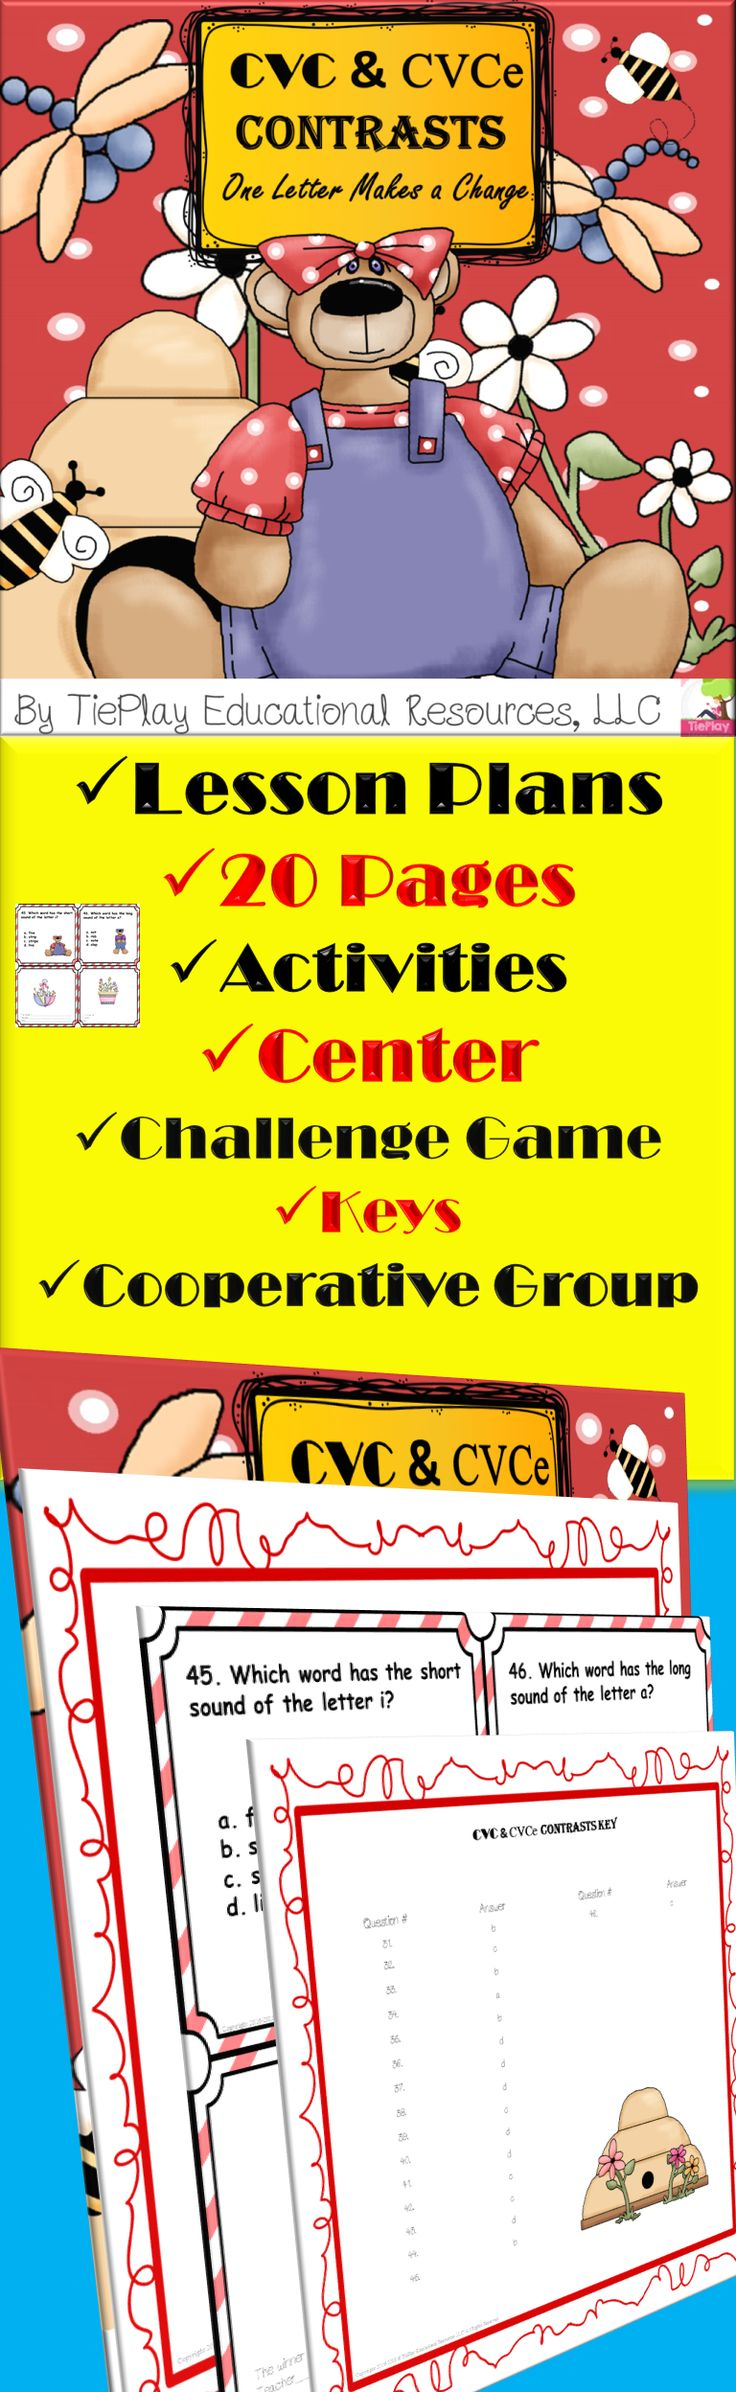 Price $5.00 Teach the correspondence between the vowels sounds. In CVC and CVCE Contrasts: One Letter Makes a Change, learners answer questions after participating in phonics and reading activities. CVC and CVCE Contrasts: One Letter Makes a Change can be used as a class game, in cooperative groups or as a center.